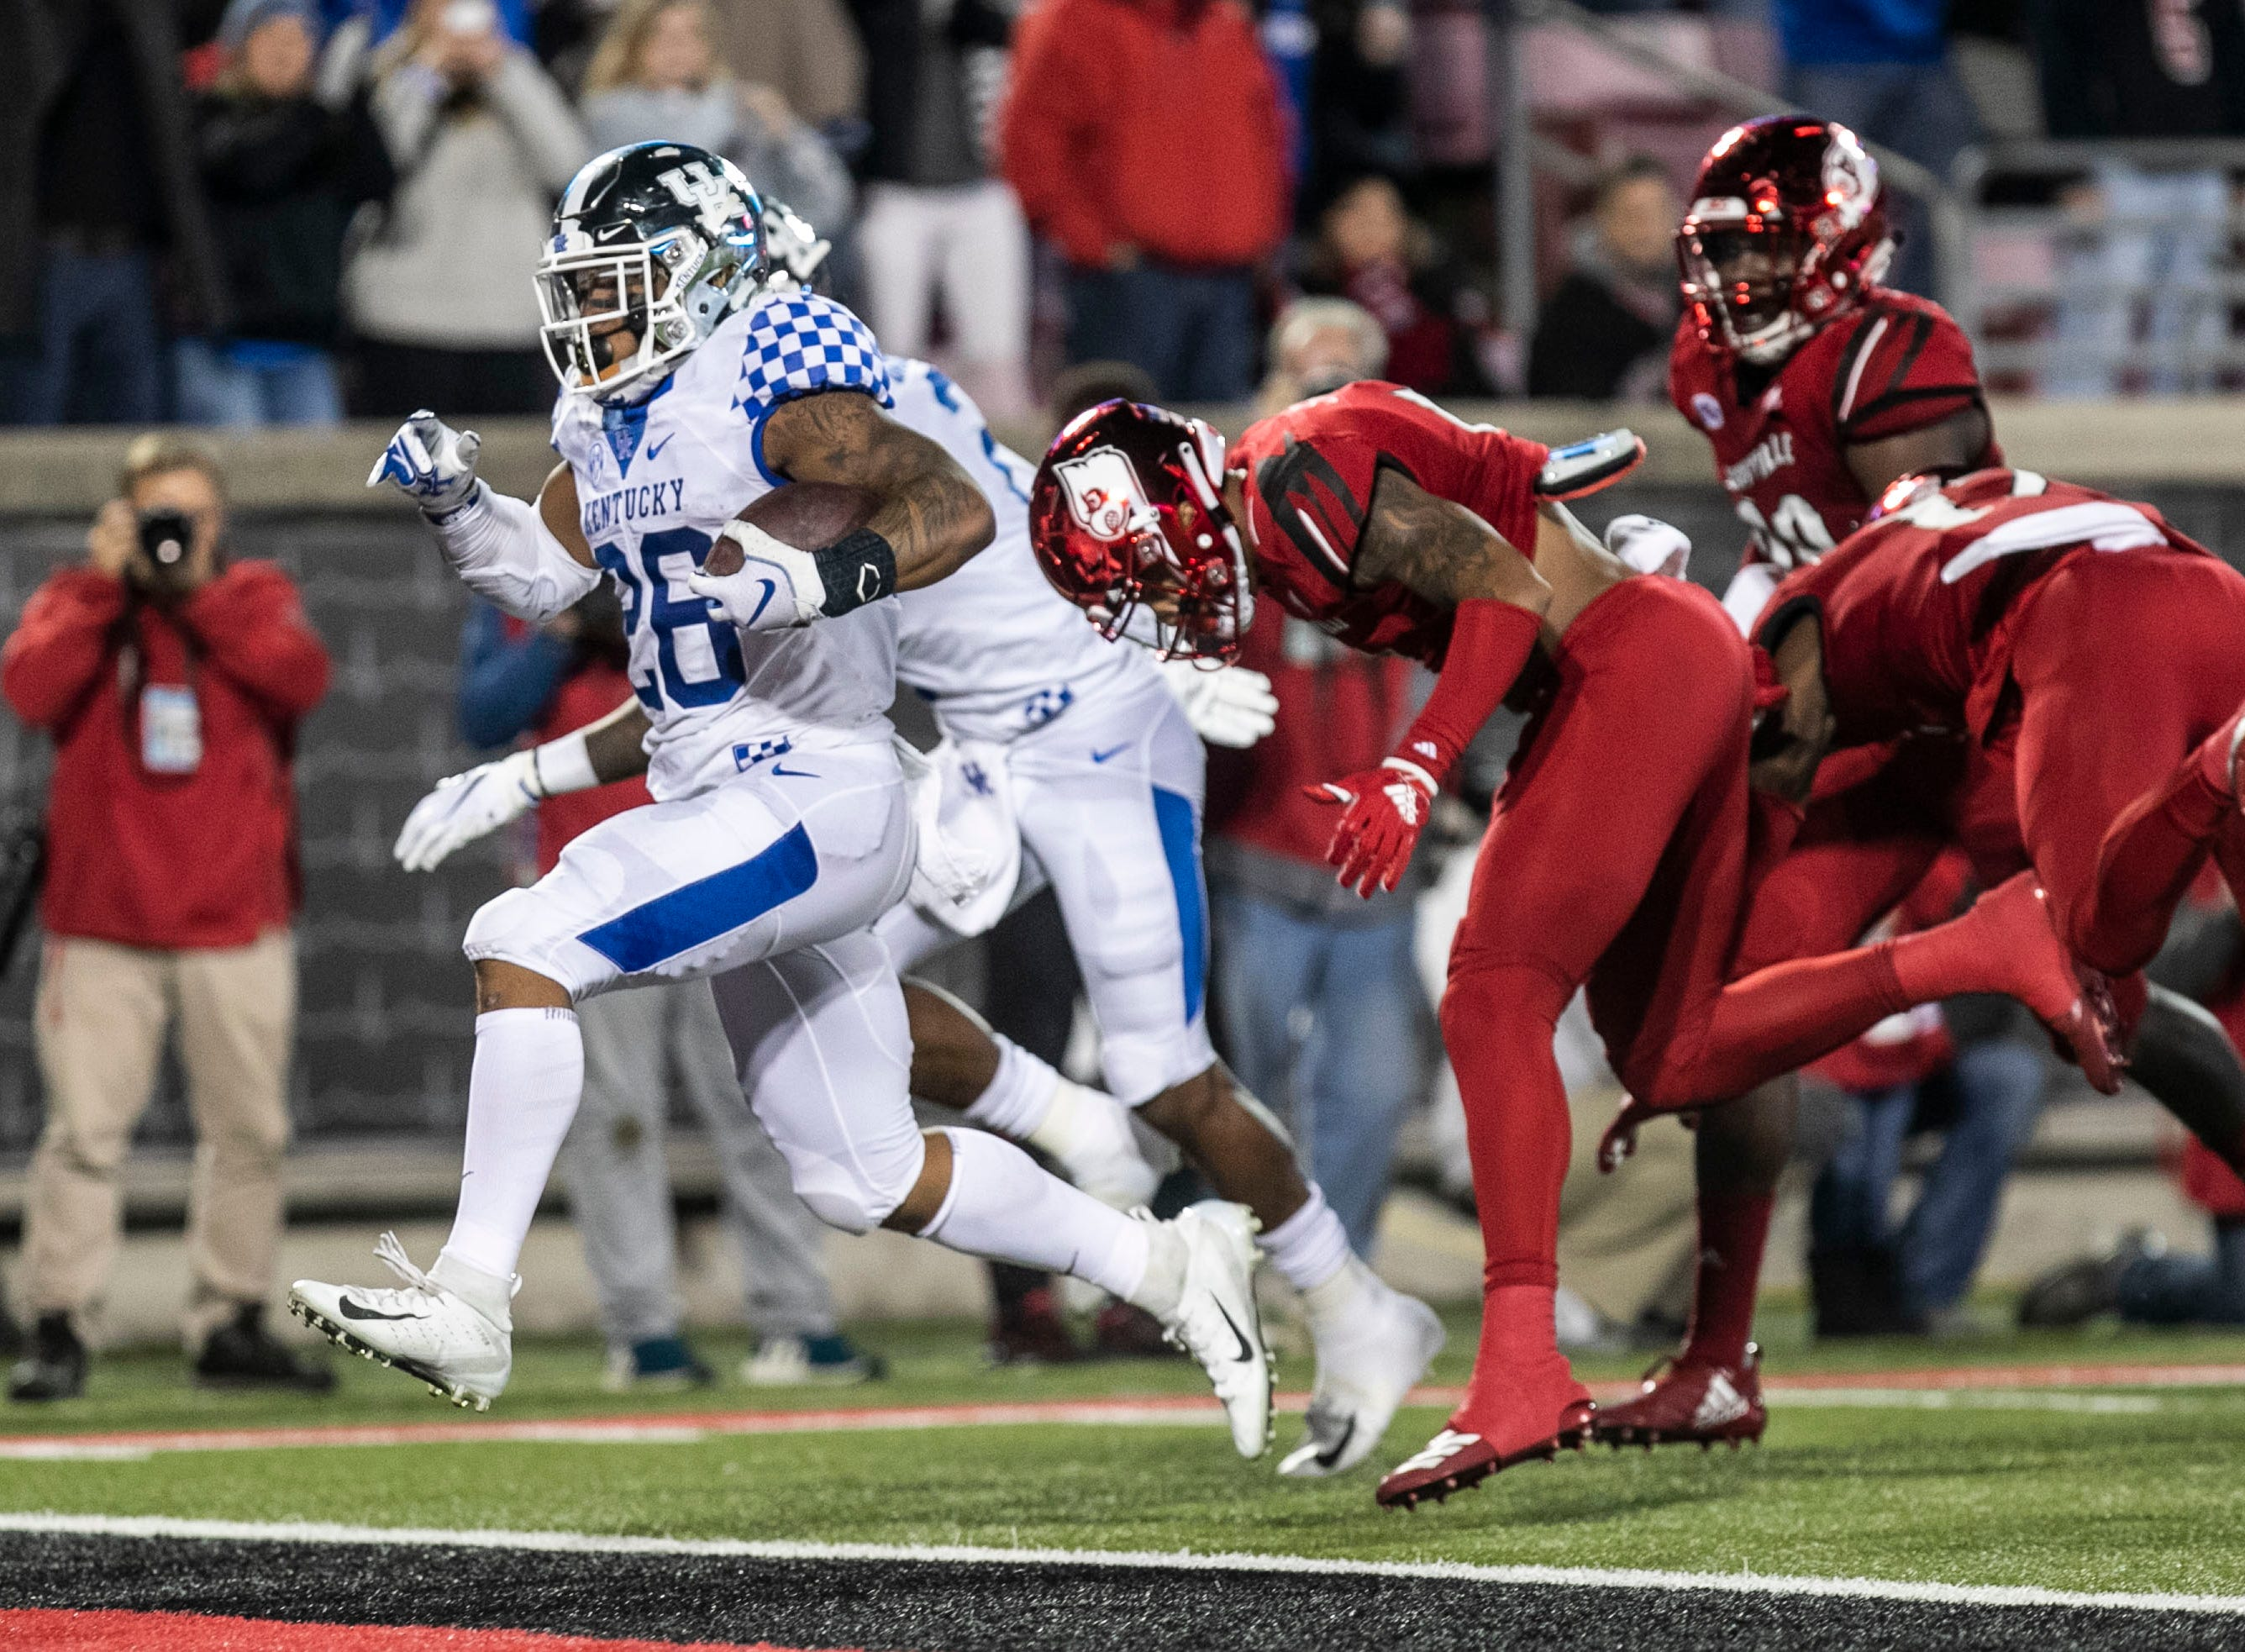 Kentucky's Benny Snell Jr. rumbles for his second touchdown against Louisville in the first half Saturday, Nov. 24, 2018.